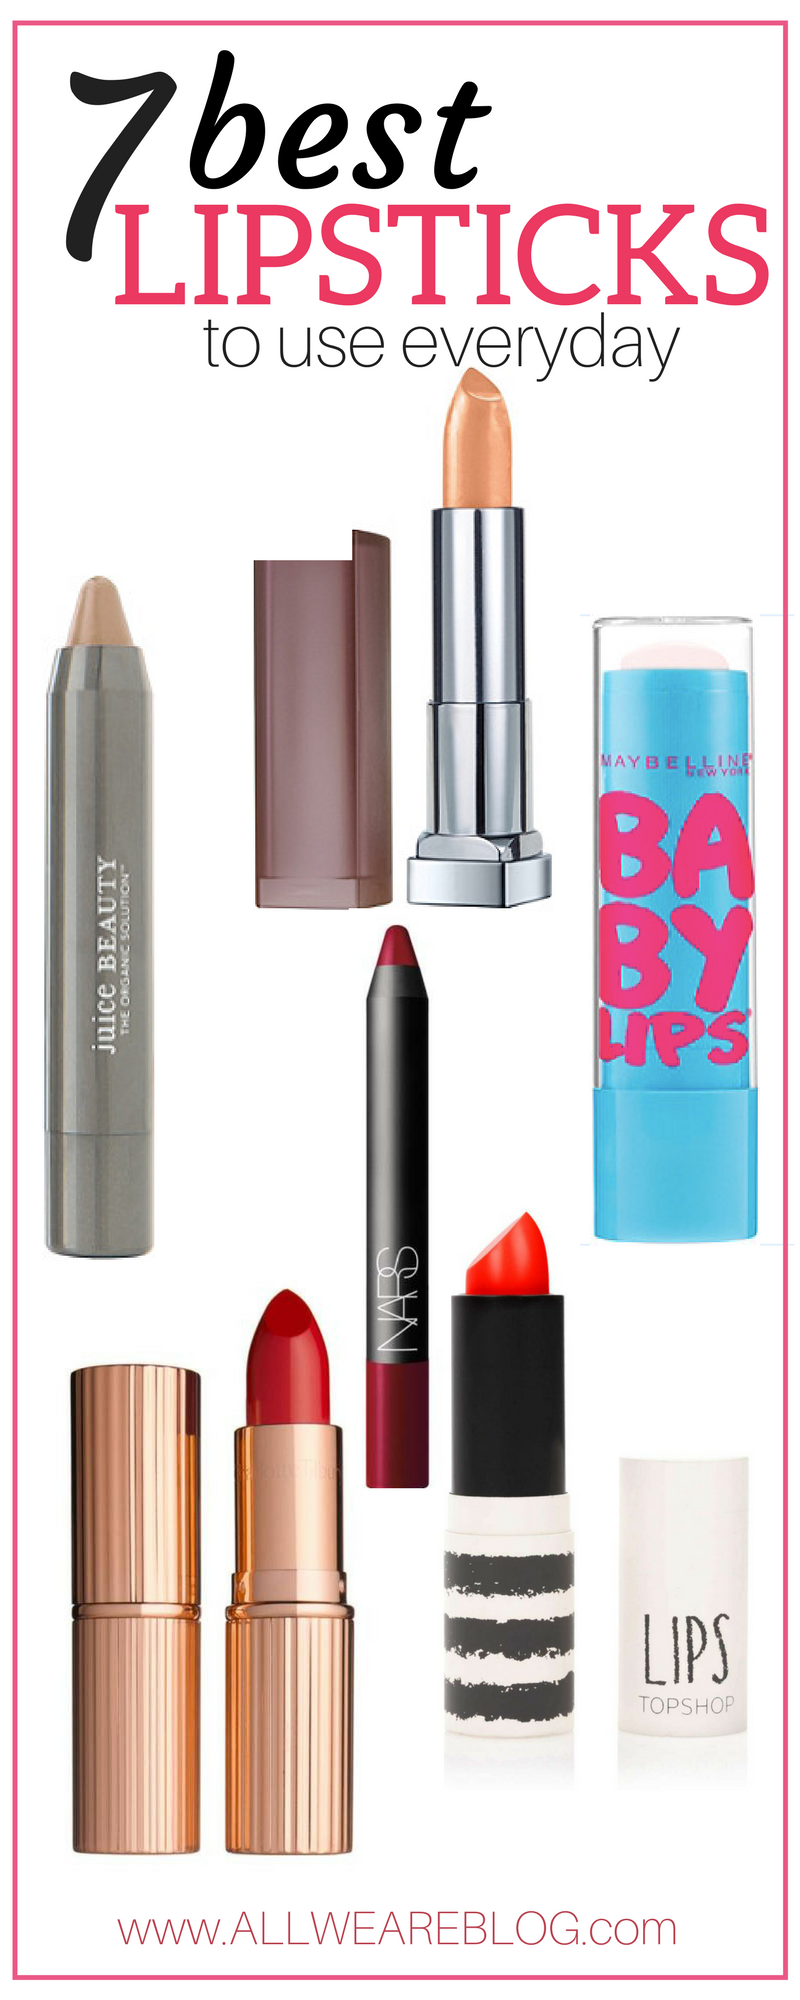 7 lipsticks to use everyday